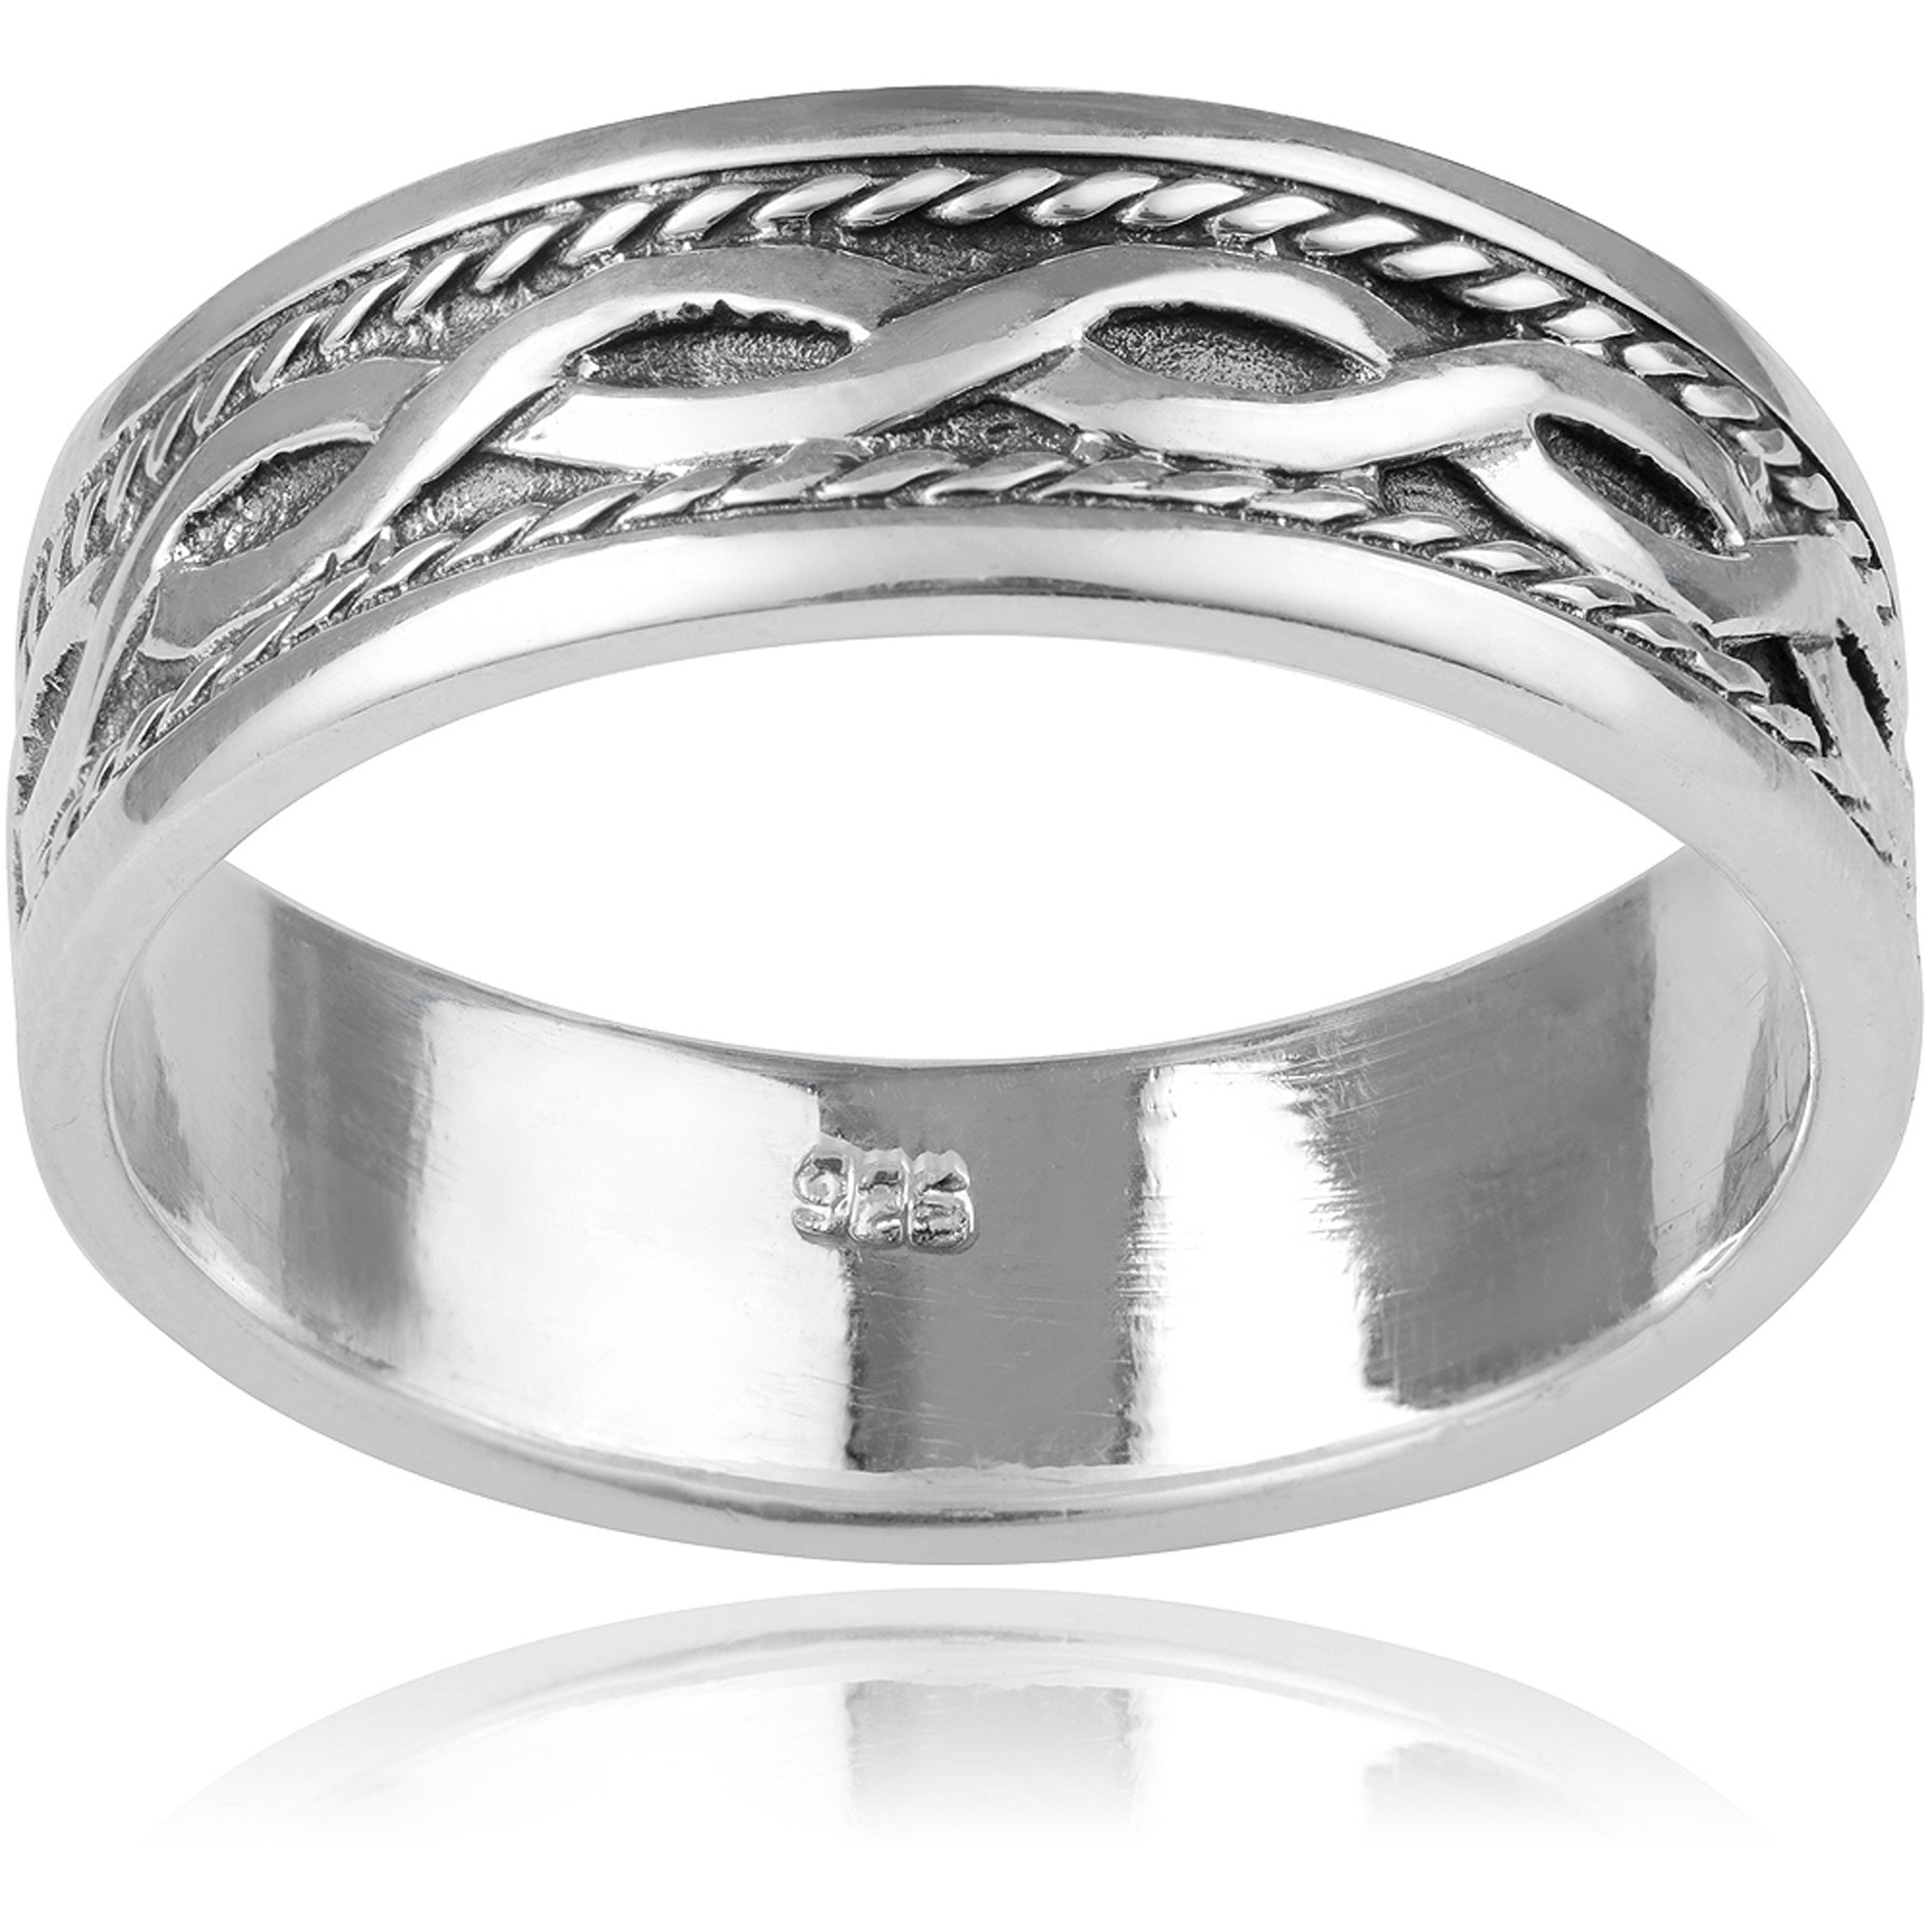 Daxx Men's Sterling Silver Celtic Knot Fashion Ring